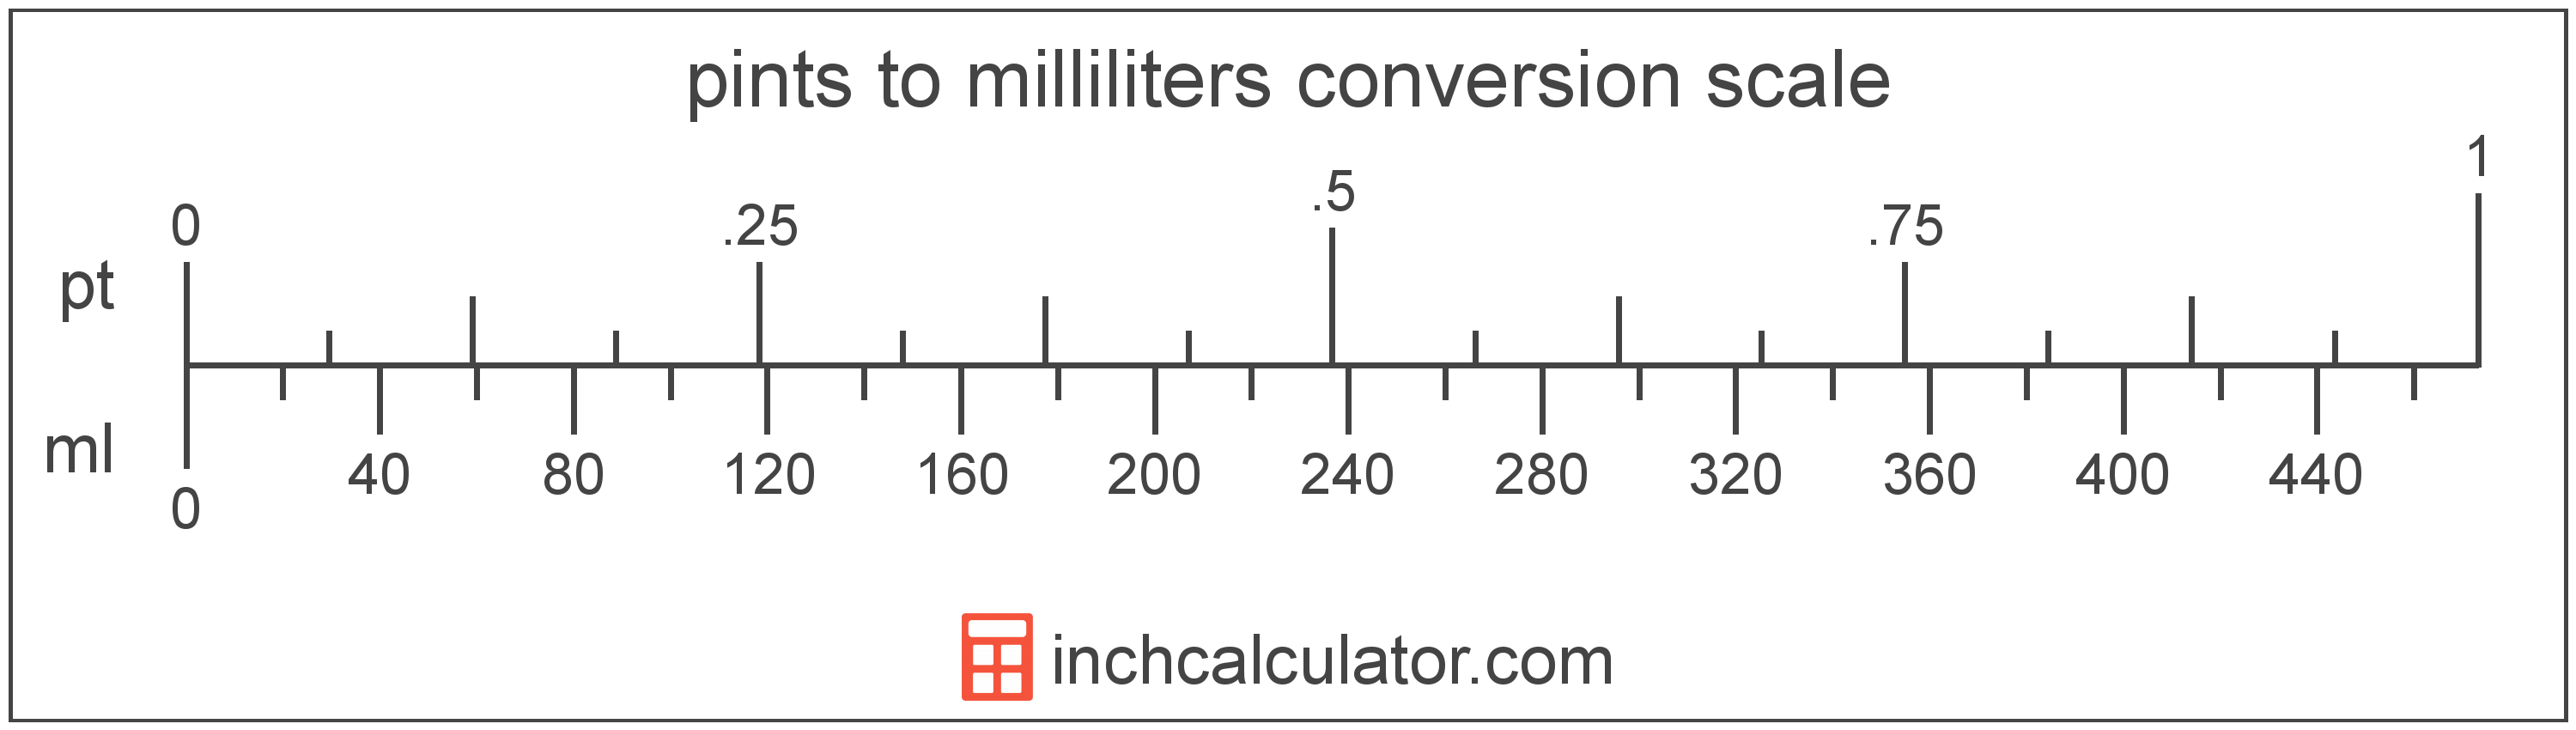 conversion scale showing pints and equivalent milliliters volume values